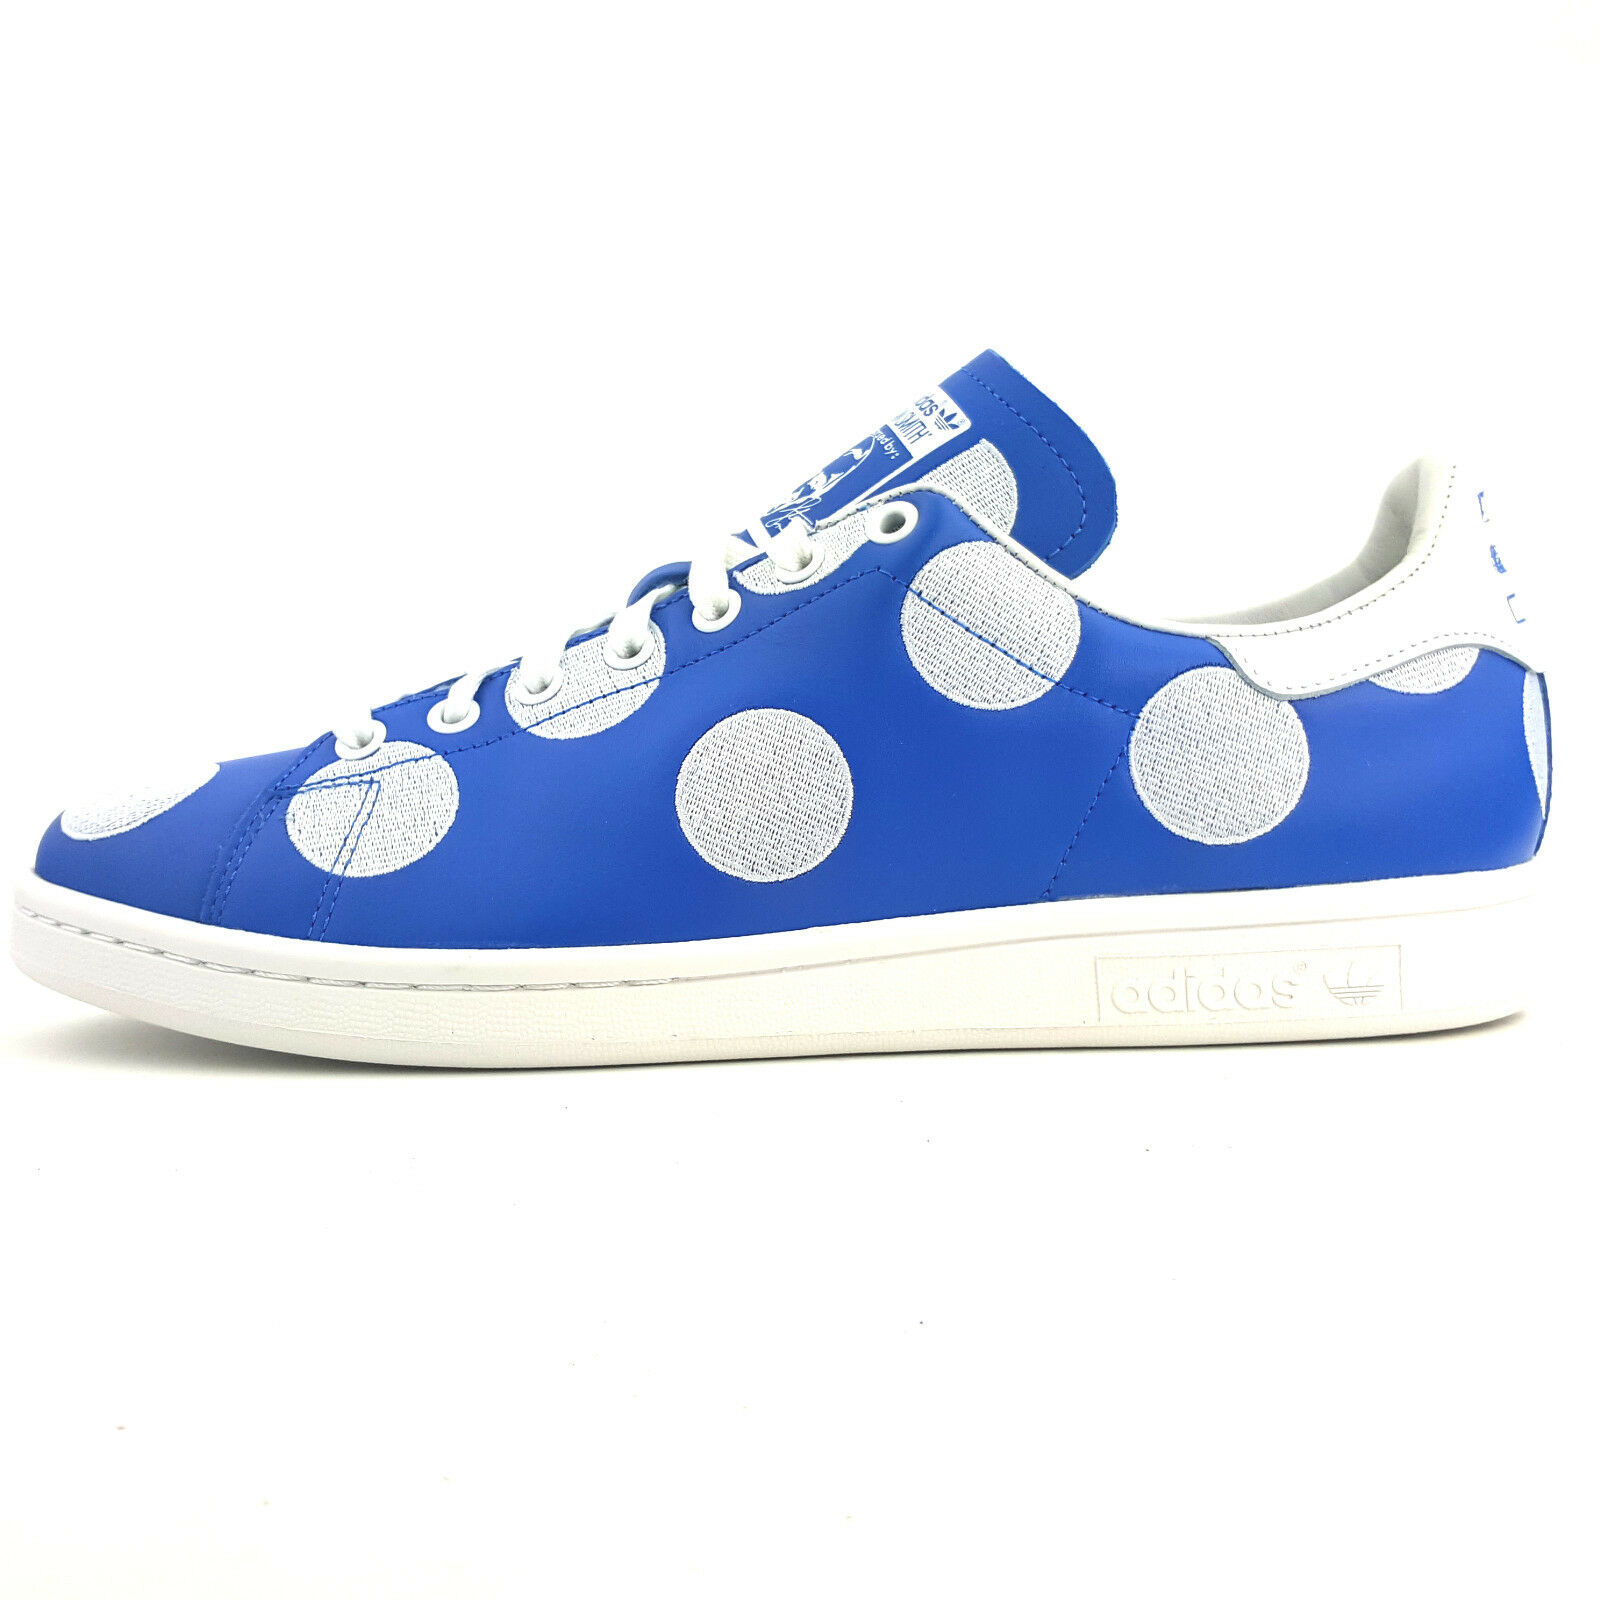 Adidas Stan Herren Smith Bpd Pharell Williams Herren Stan Damen Sneaker Zapatos Blau B25398 ca4ed5